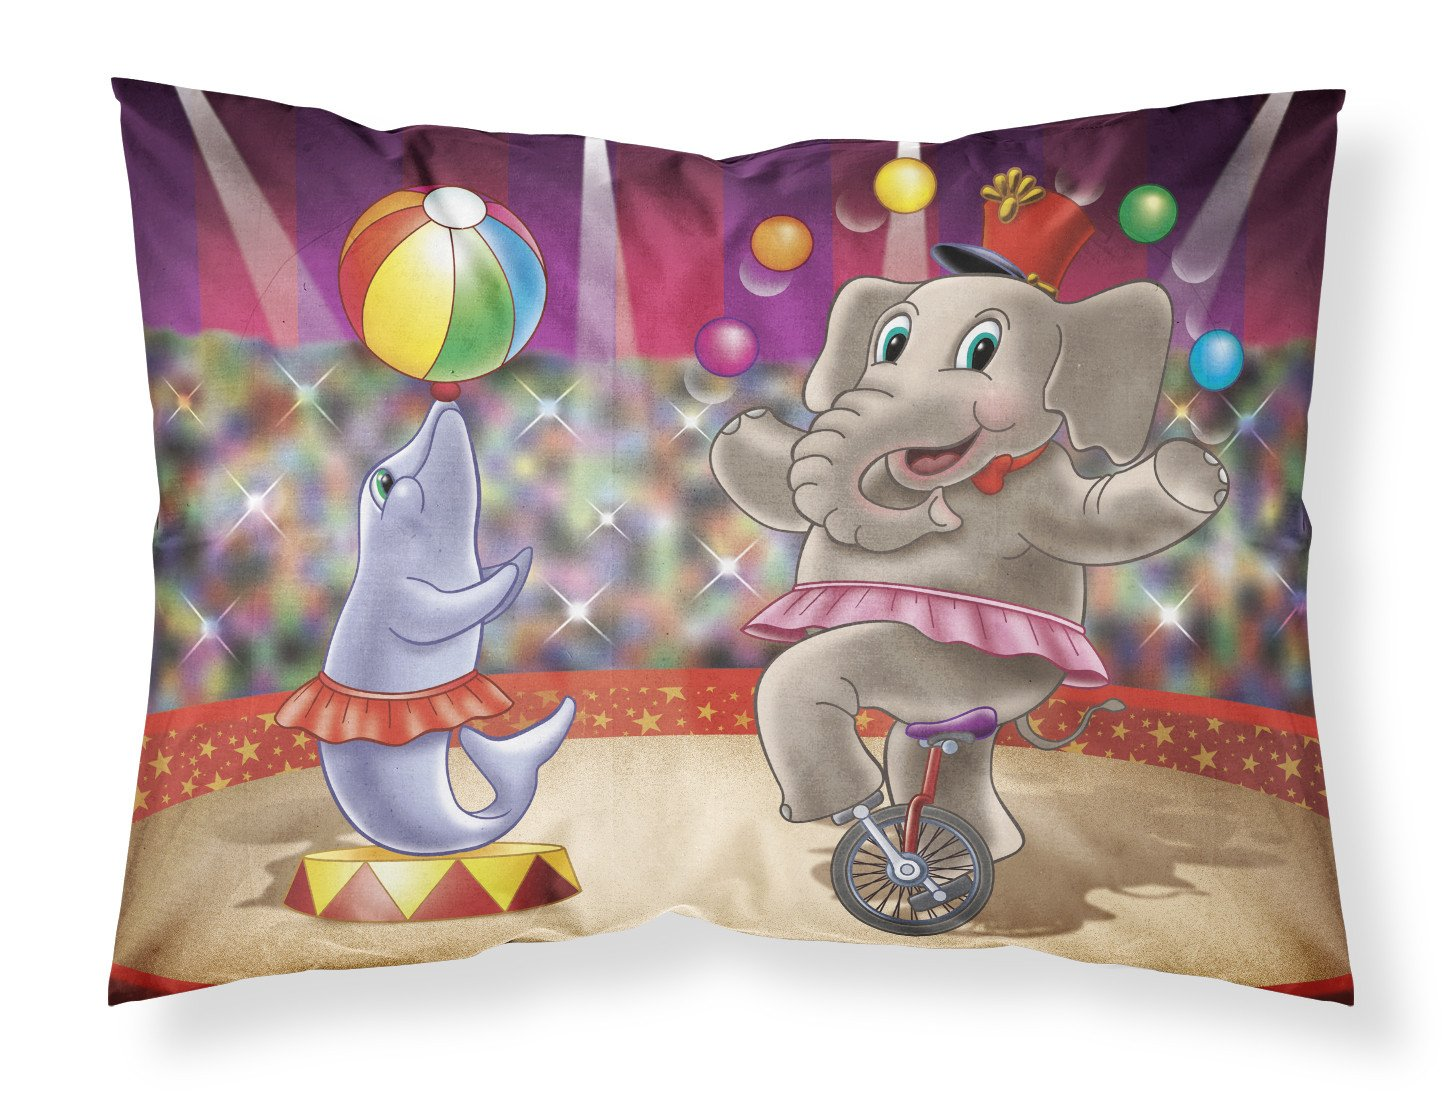 Circus Elephand and Dolphin Fabric Standard Pillowcase APH3816PILLOWCASE by Caroline's Treasures